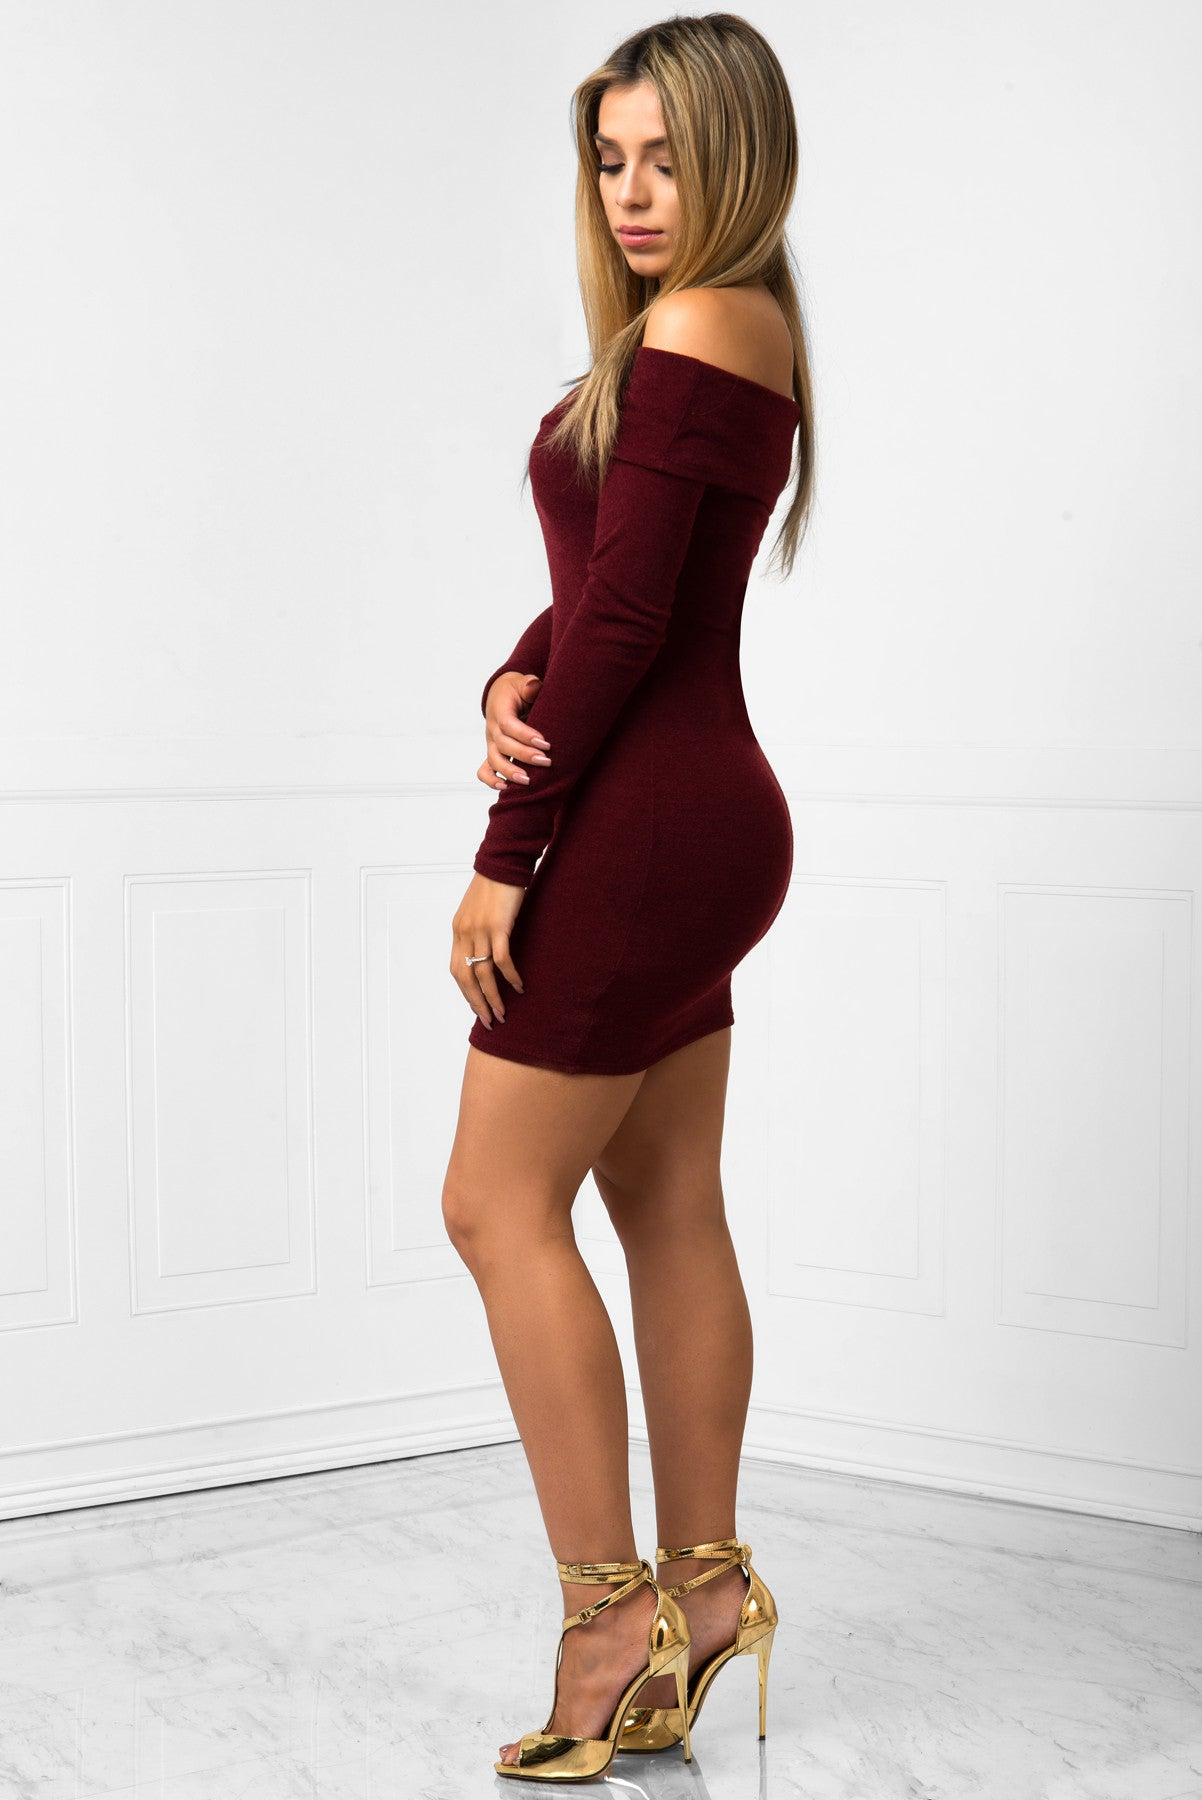 Kelsey Burgundy Dress - Fashion Effect Store  - 2